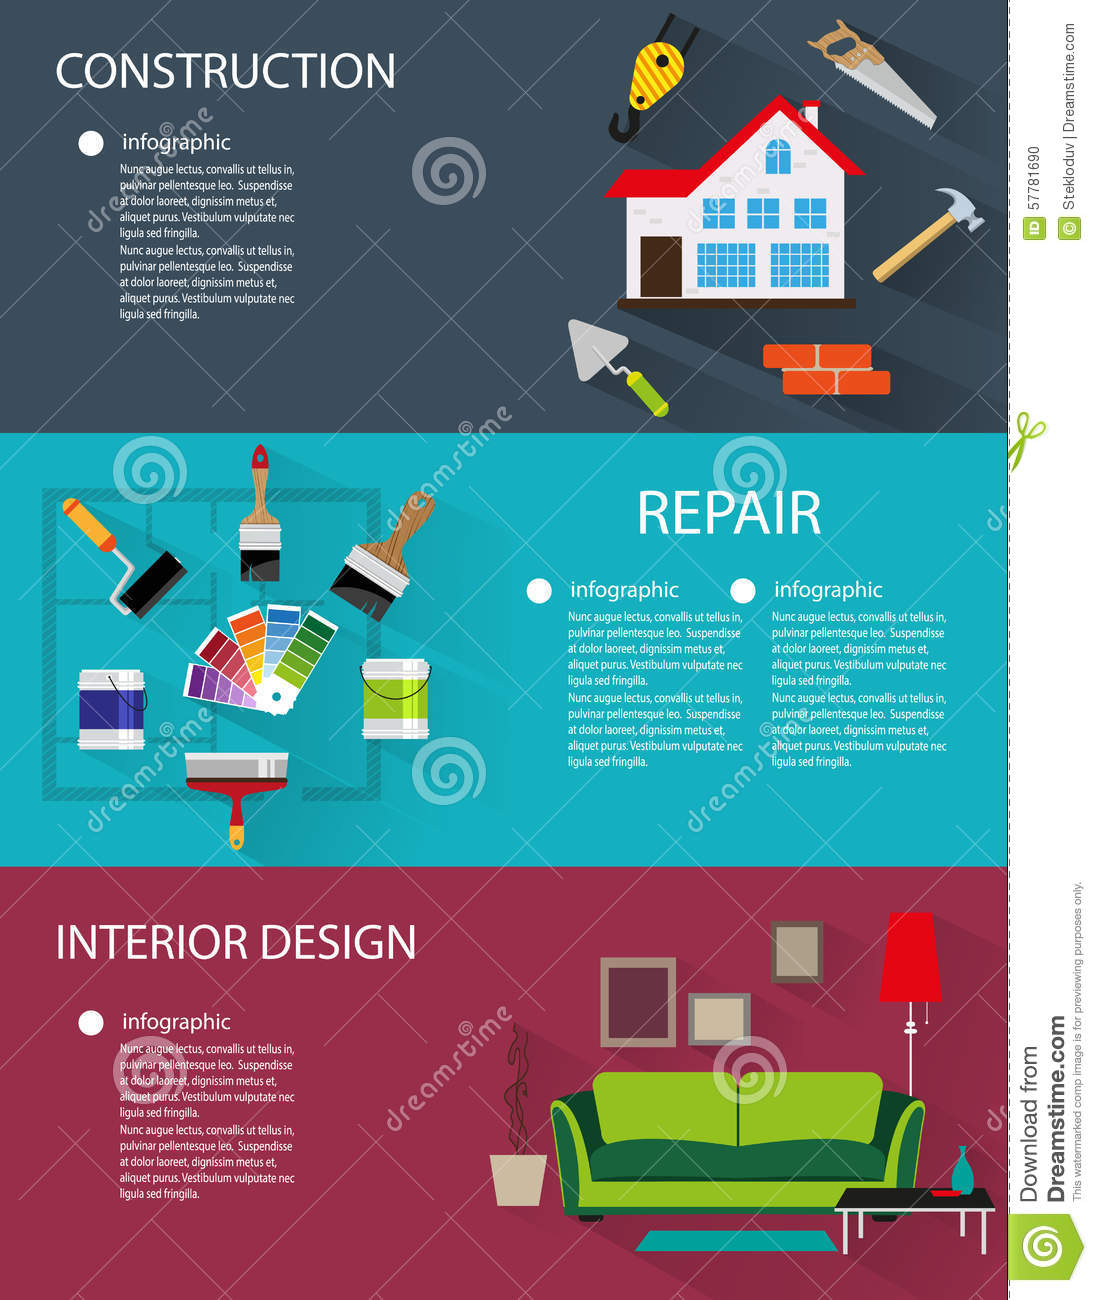 Royalty Free Vector Architecture Construction Design Infographic Interior